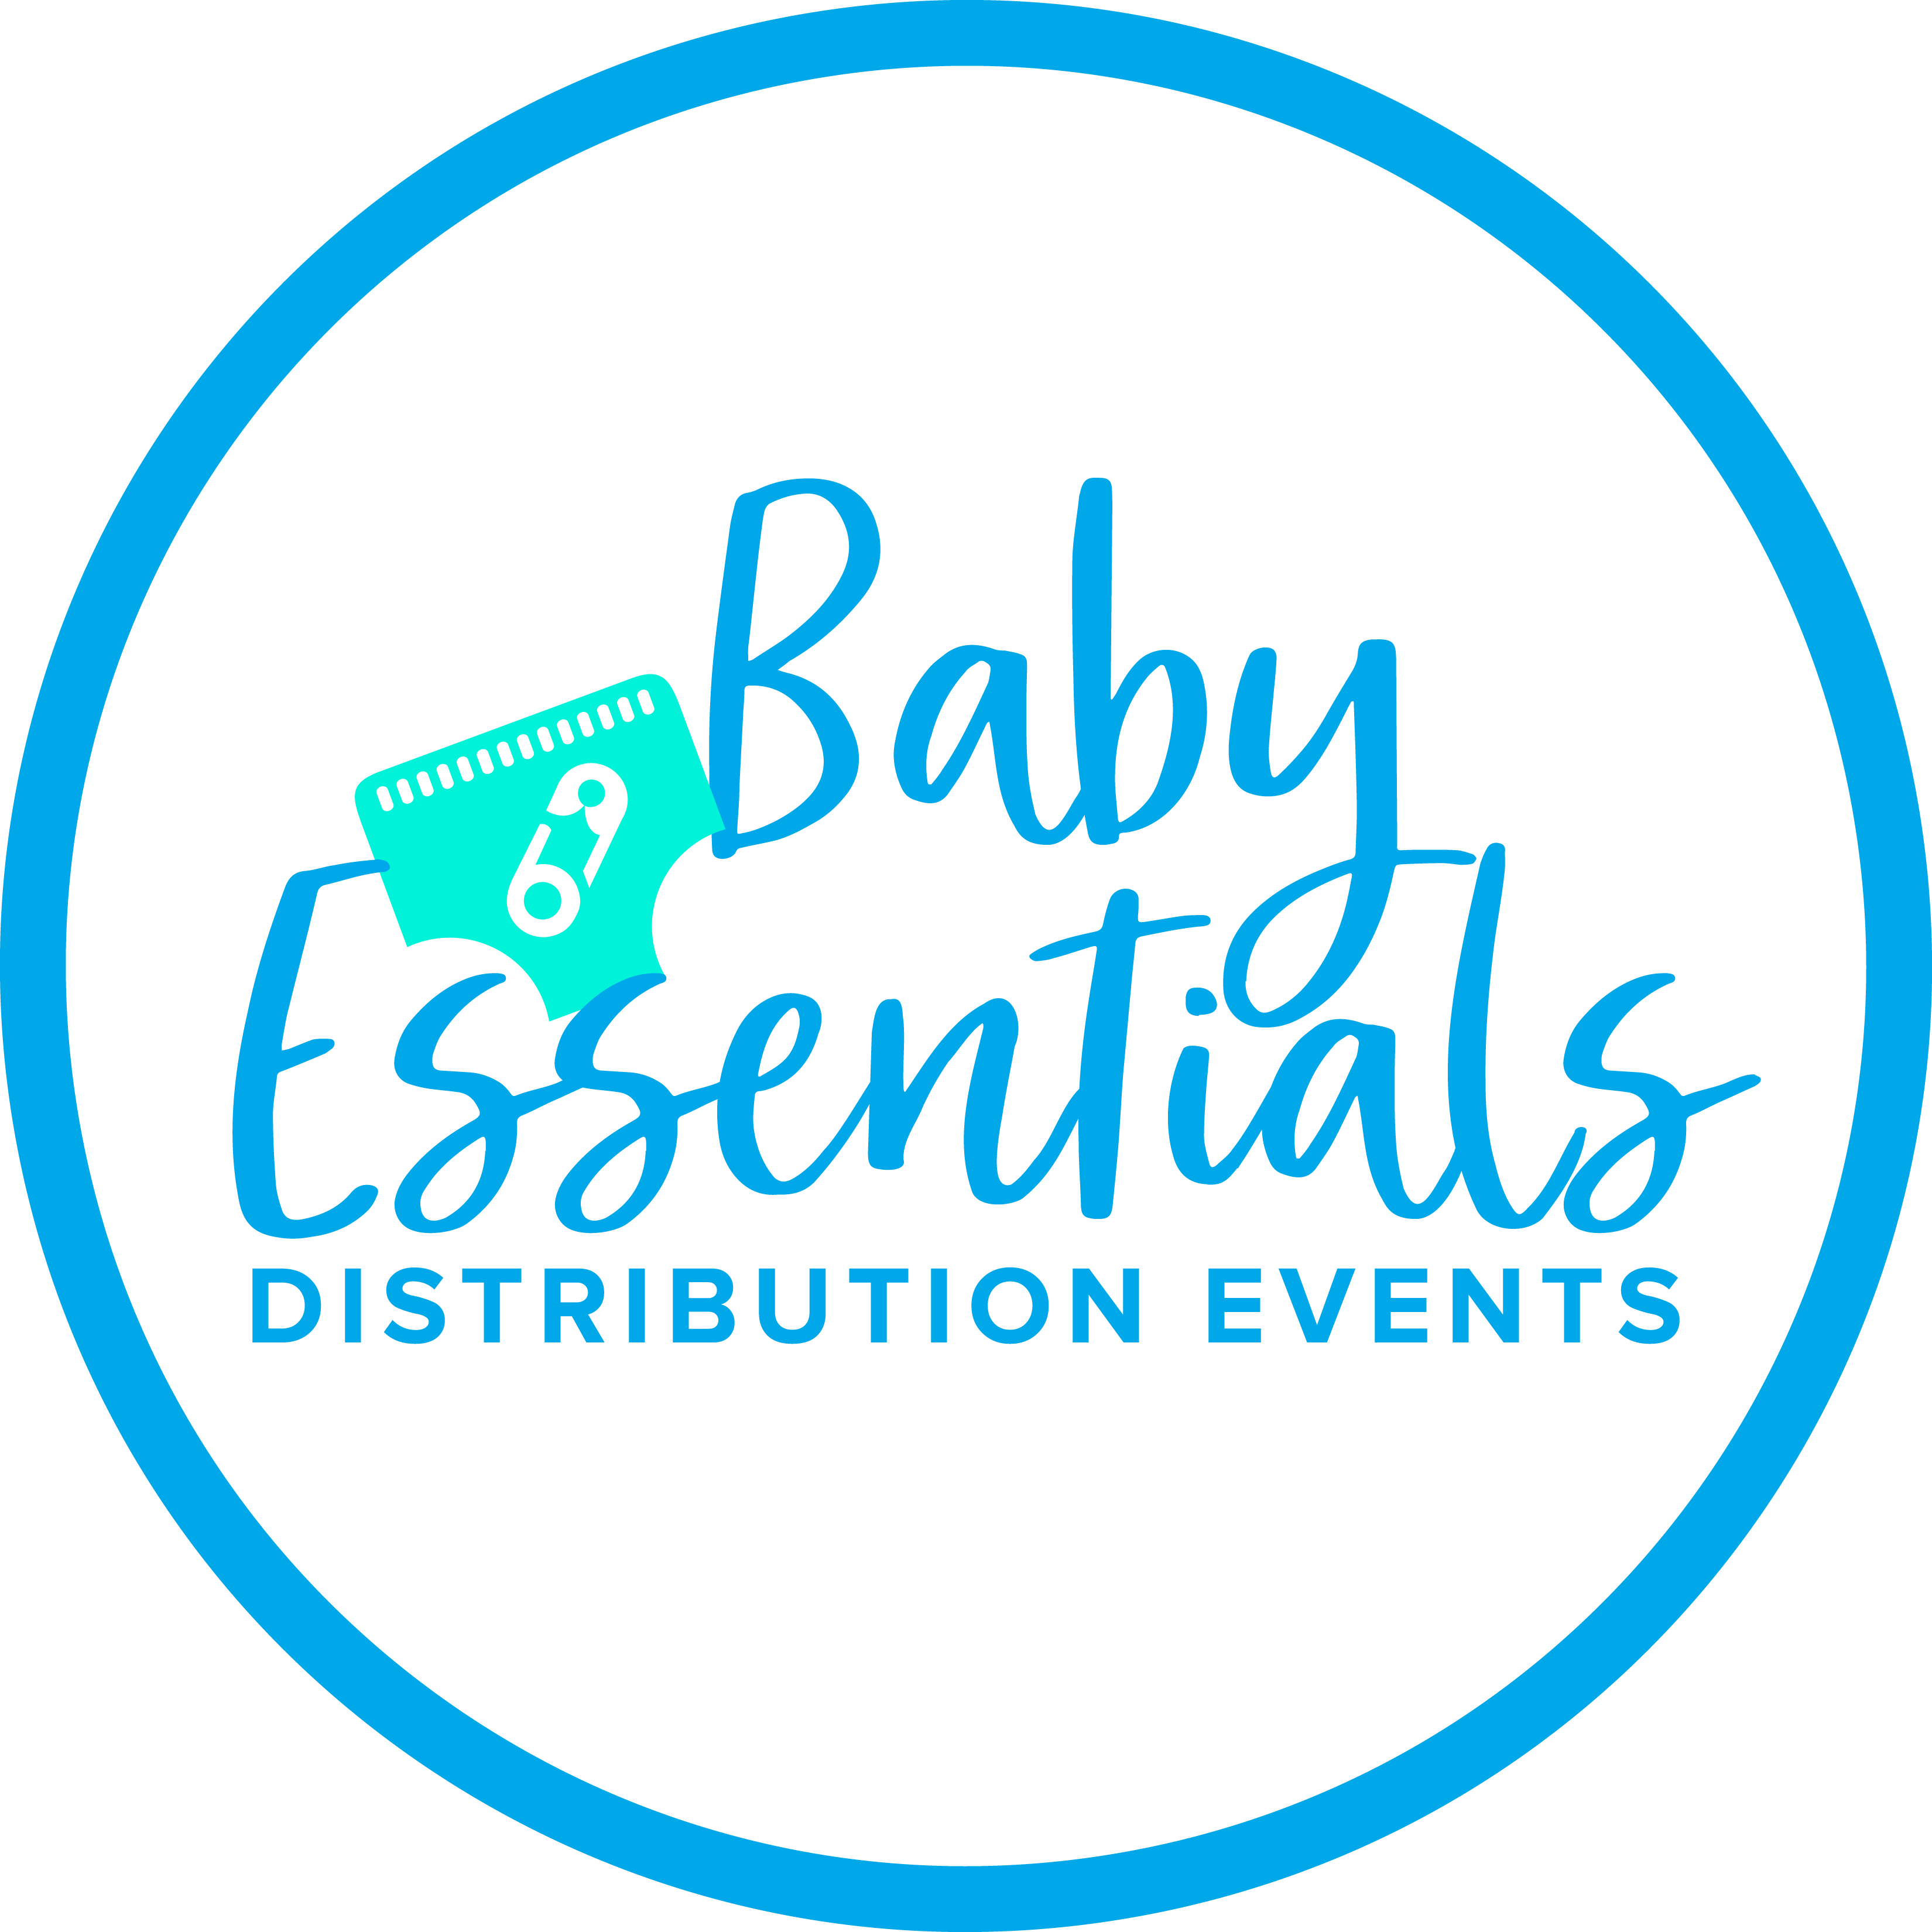 baby essentials distribution events circle logo